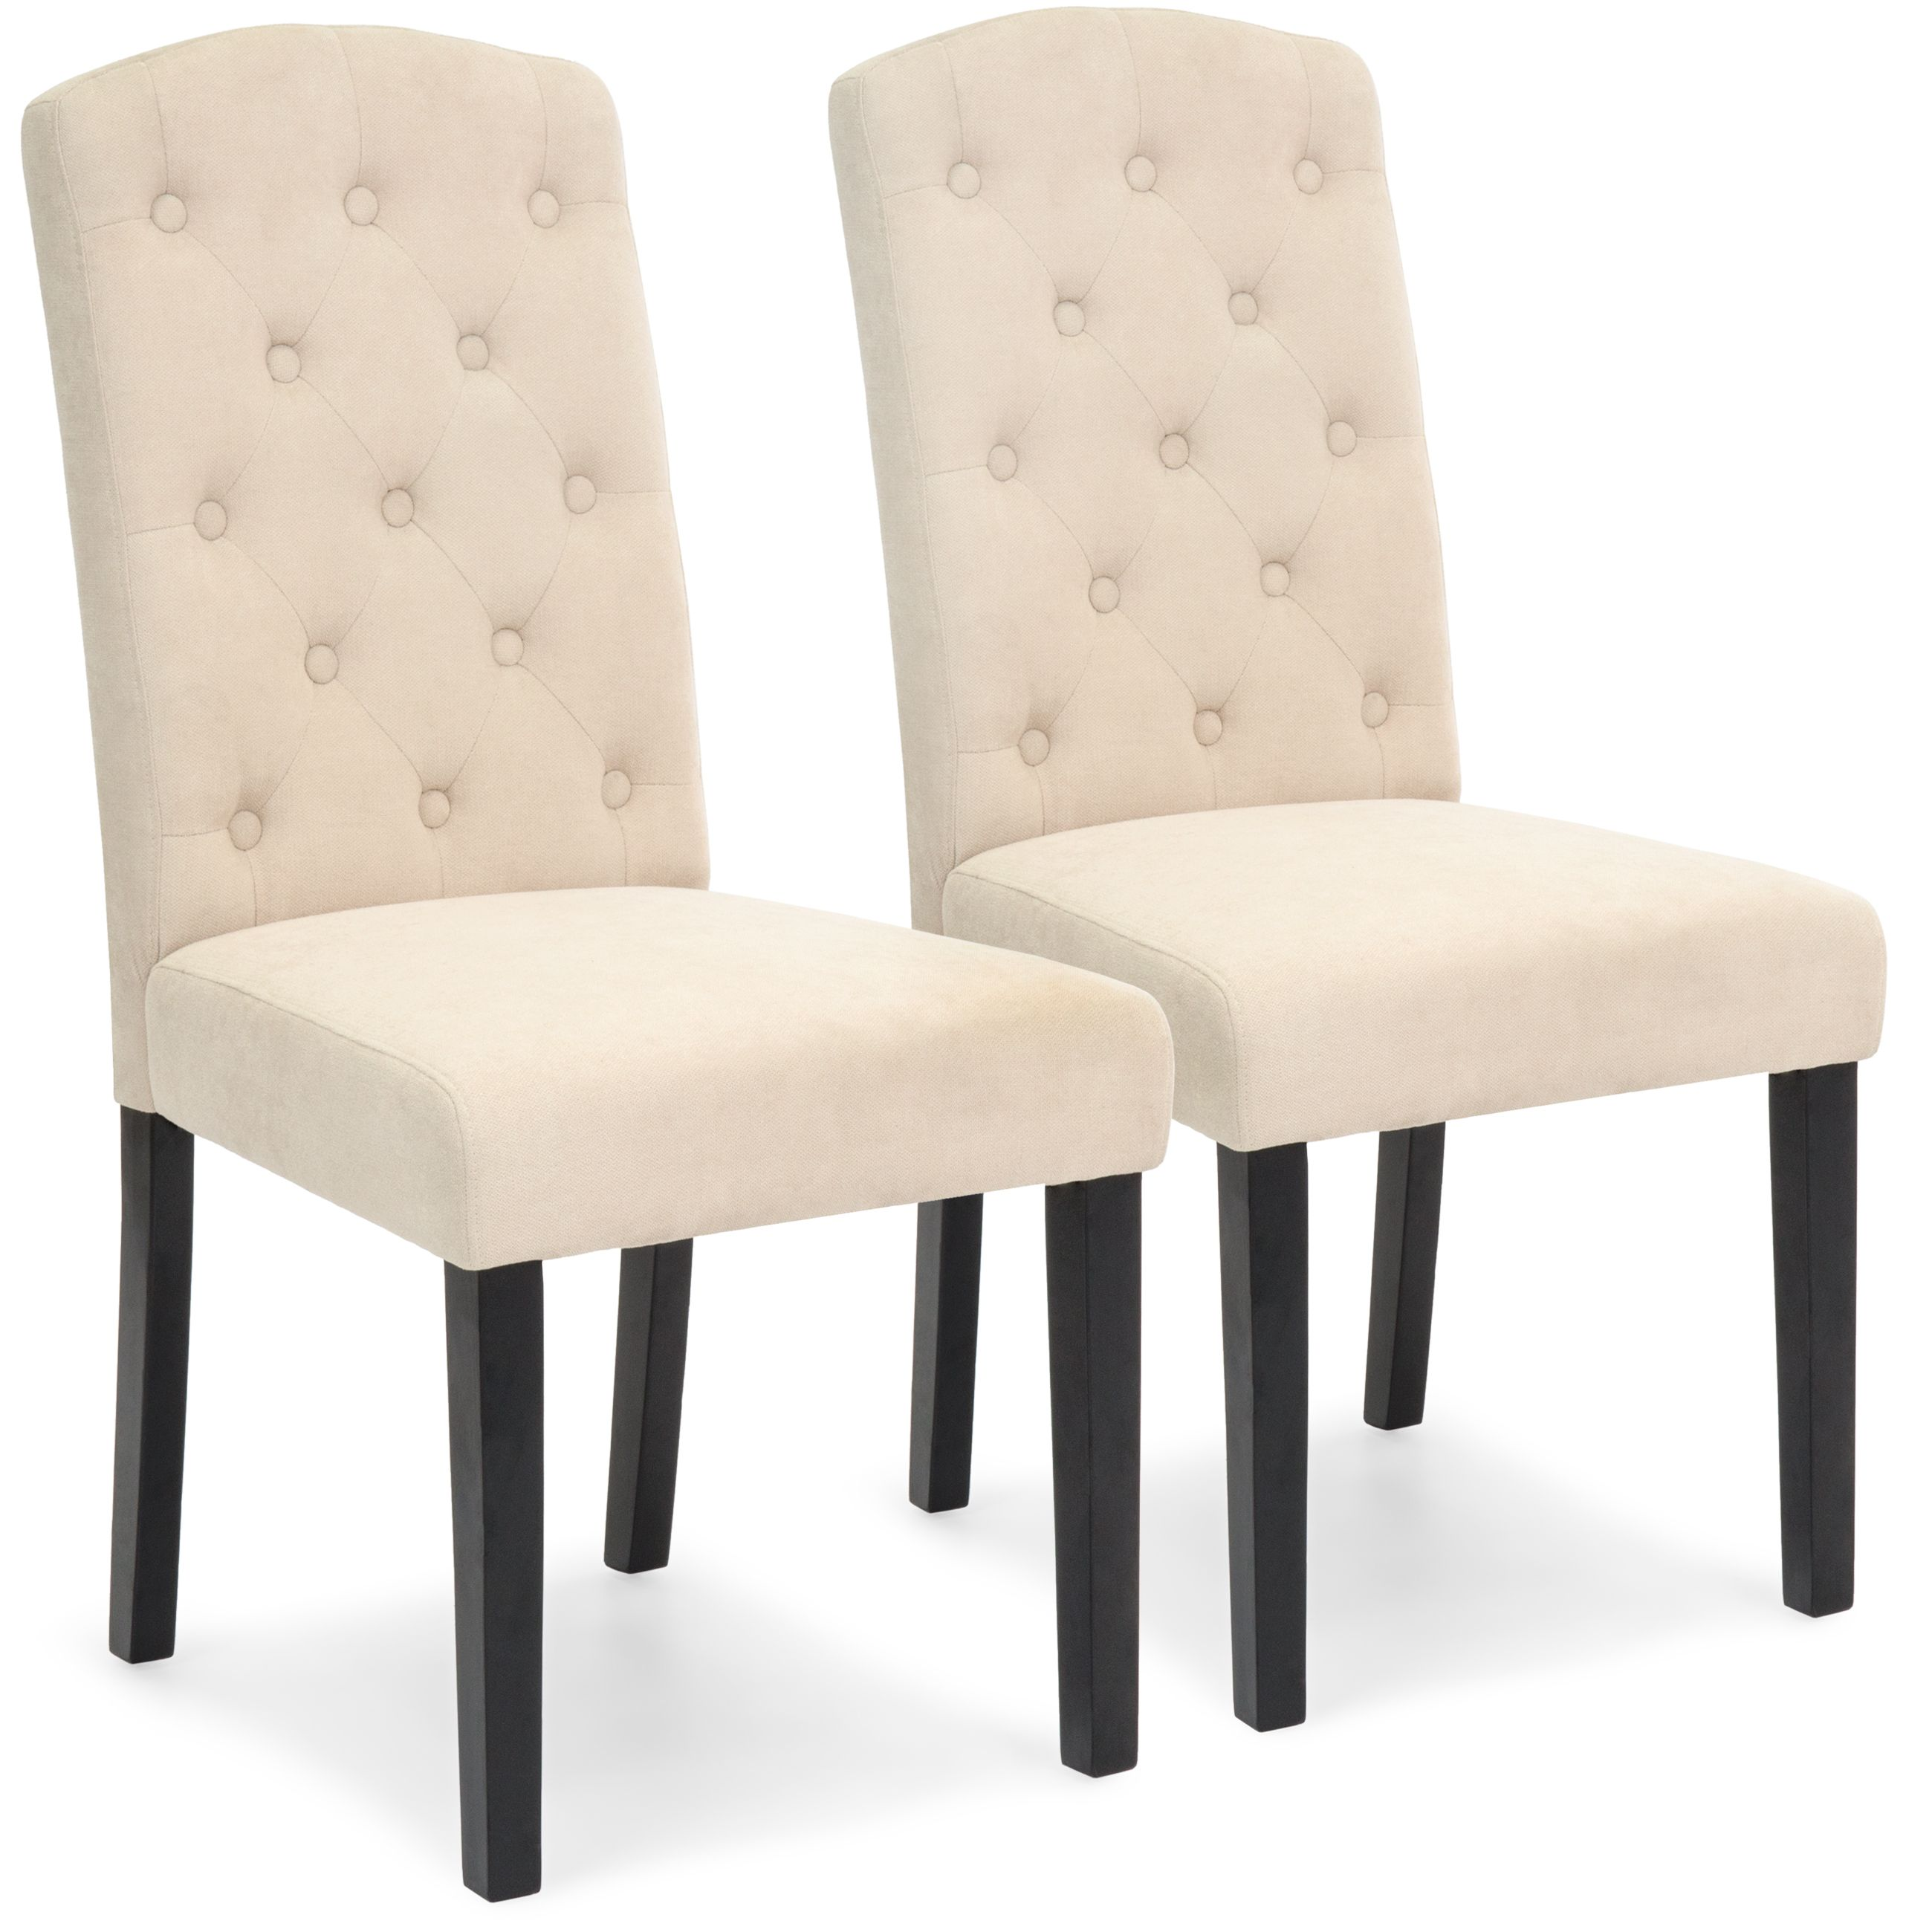 Home With Images Parsons Dining Chairs Dining Chairs Fabric Dining Chairs